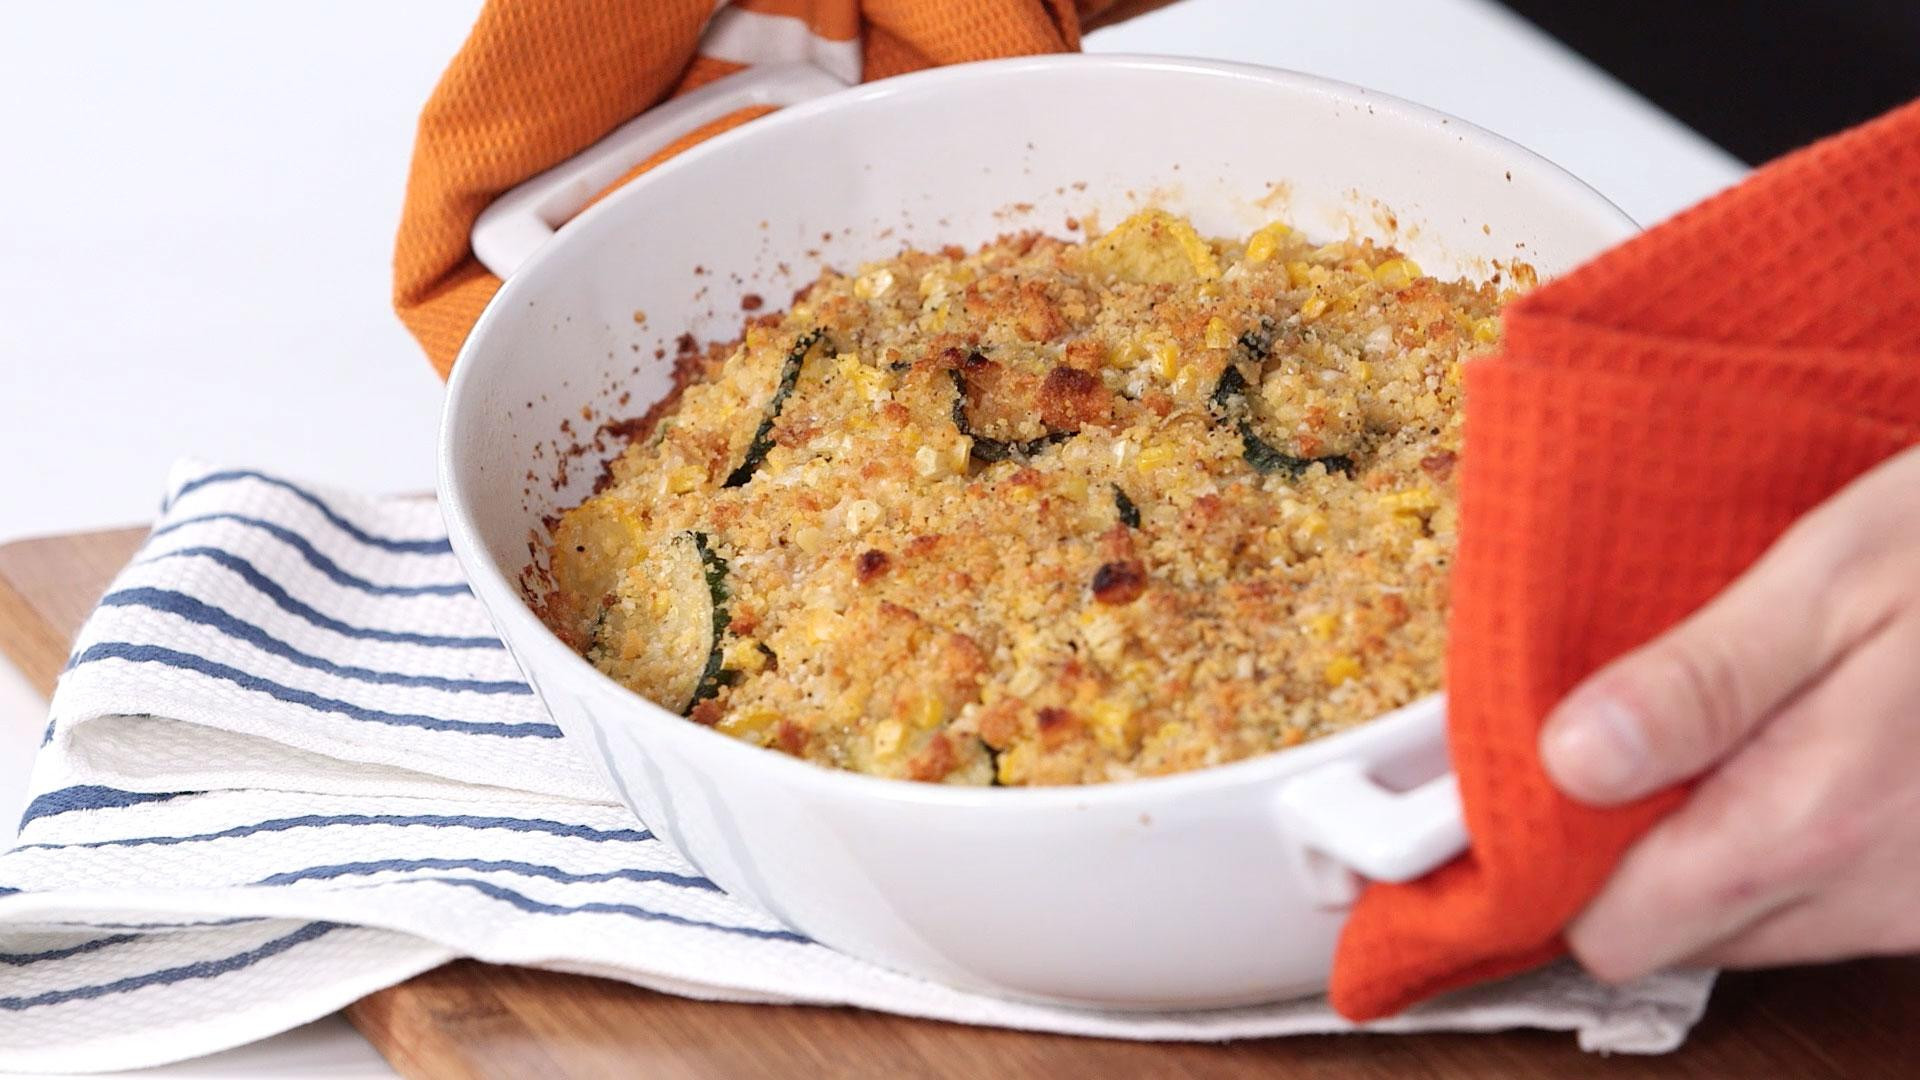 Squash Casserole Southern Living  Taste of the South Squash Casserole Southern Living